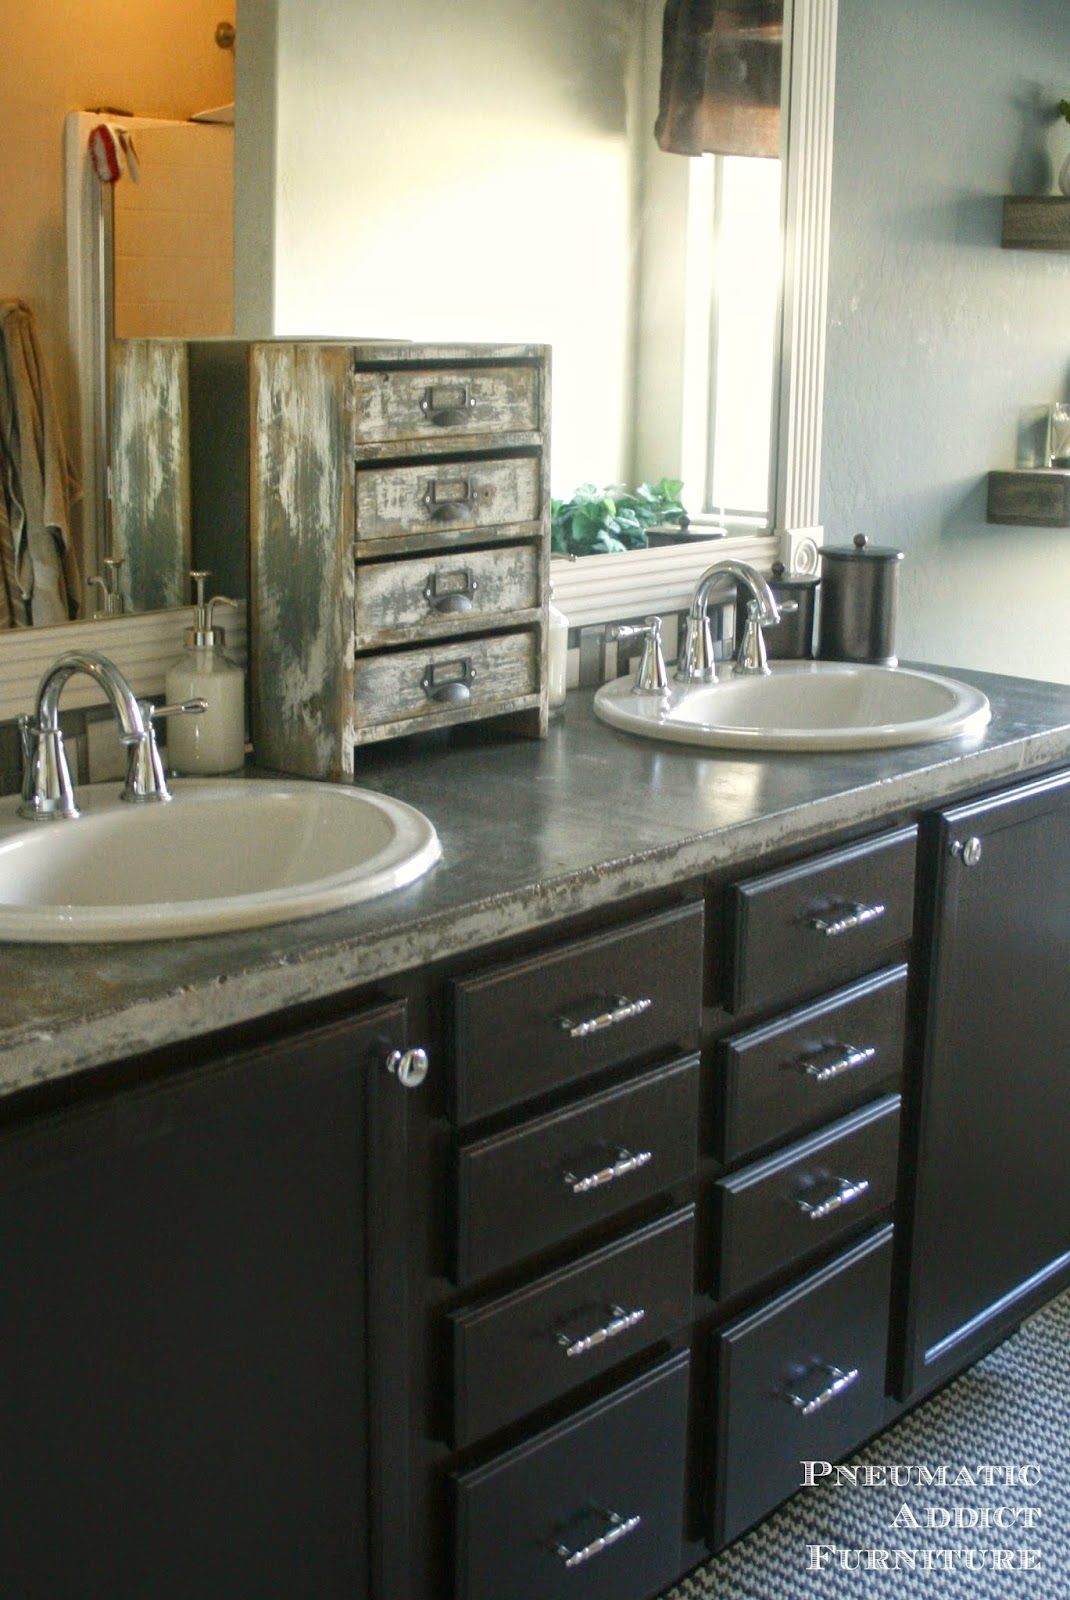 Awesome Iu0027m Adoring This Counter Top Make Up Storage From What A Great Way To Add  Beautiful Storage.